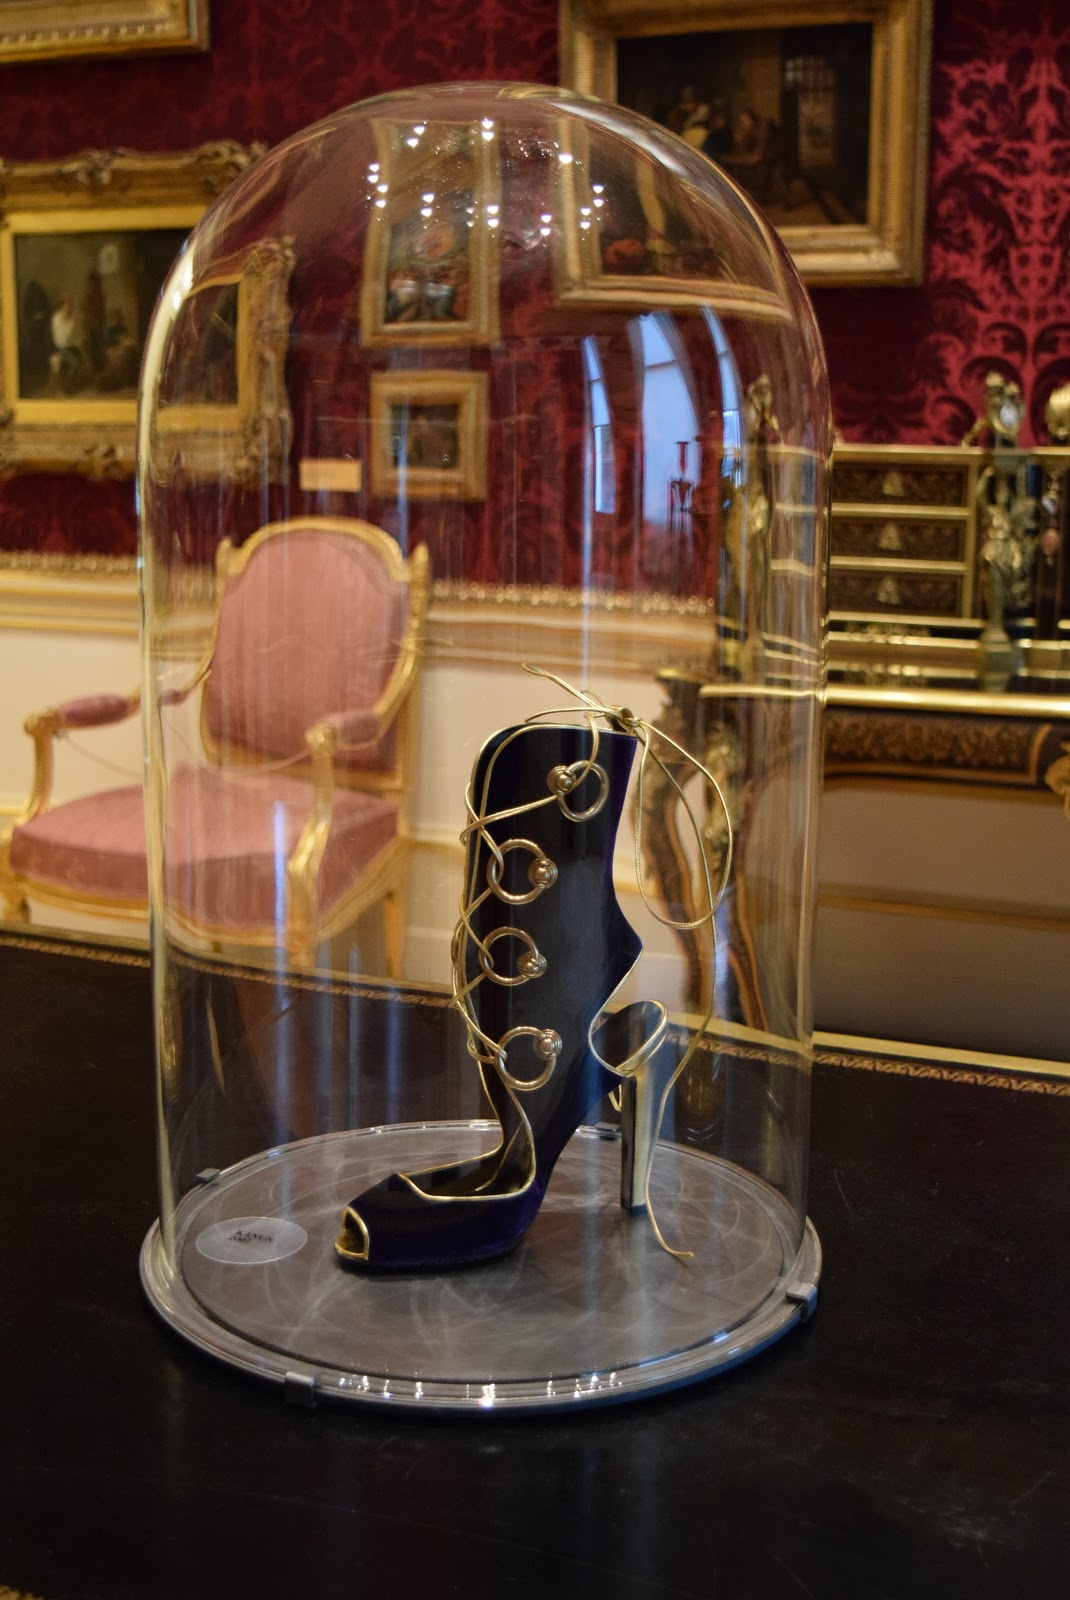 Manolo Blahnik black lace up boot exhibition